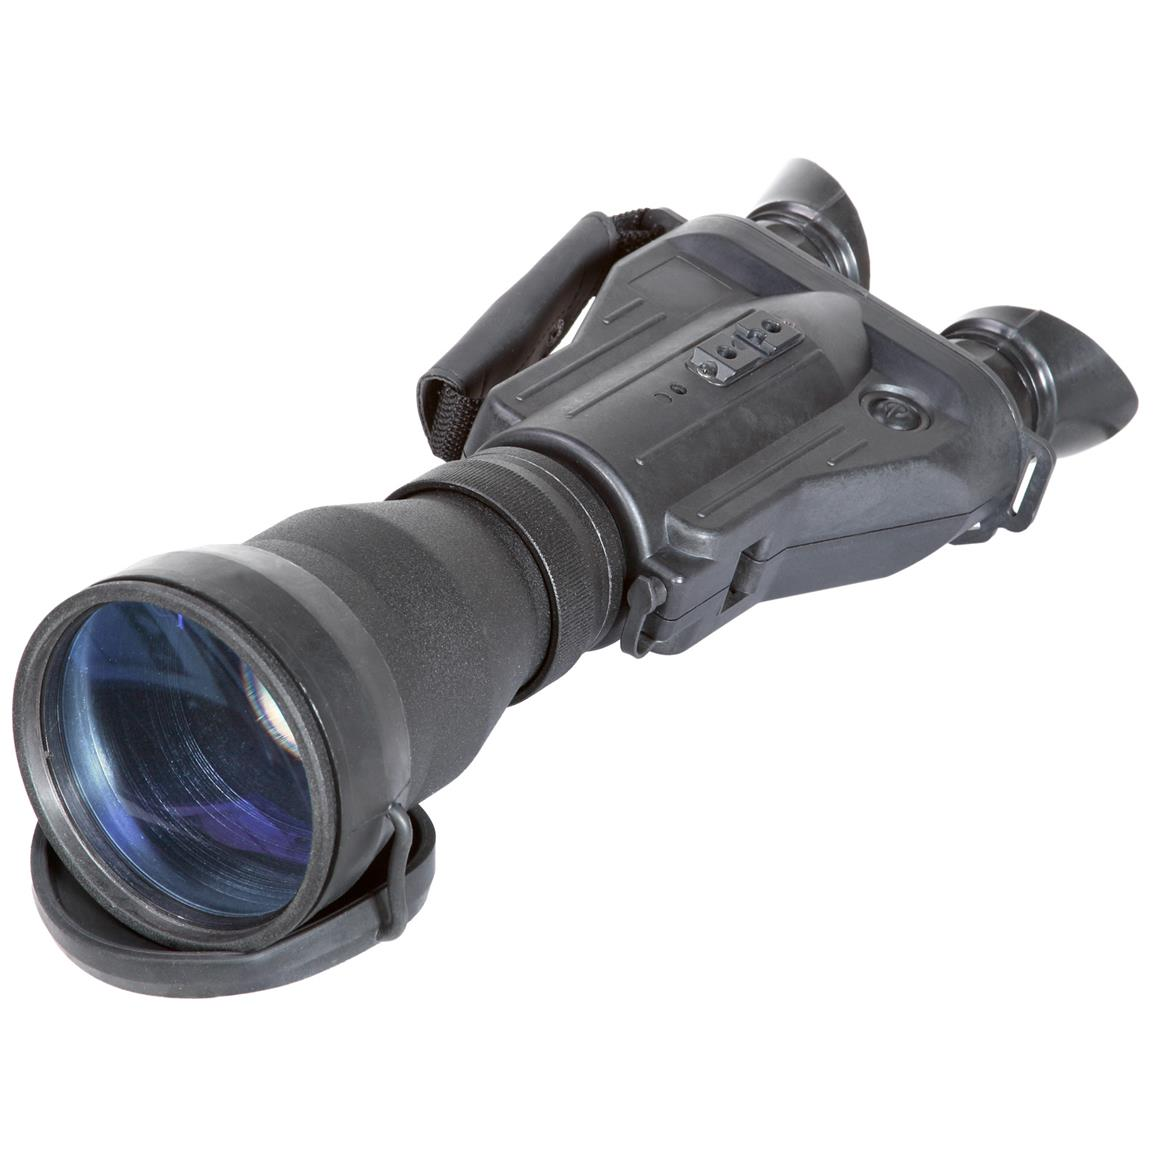 Armasight Discovery 8X Alpha Gen 3P Night Vision Binoculars